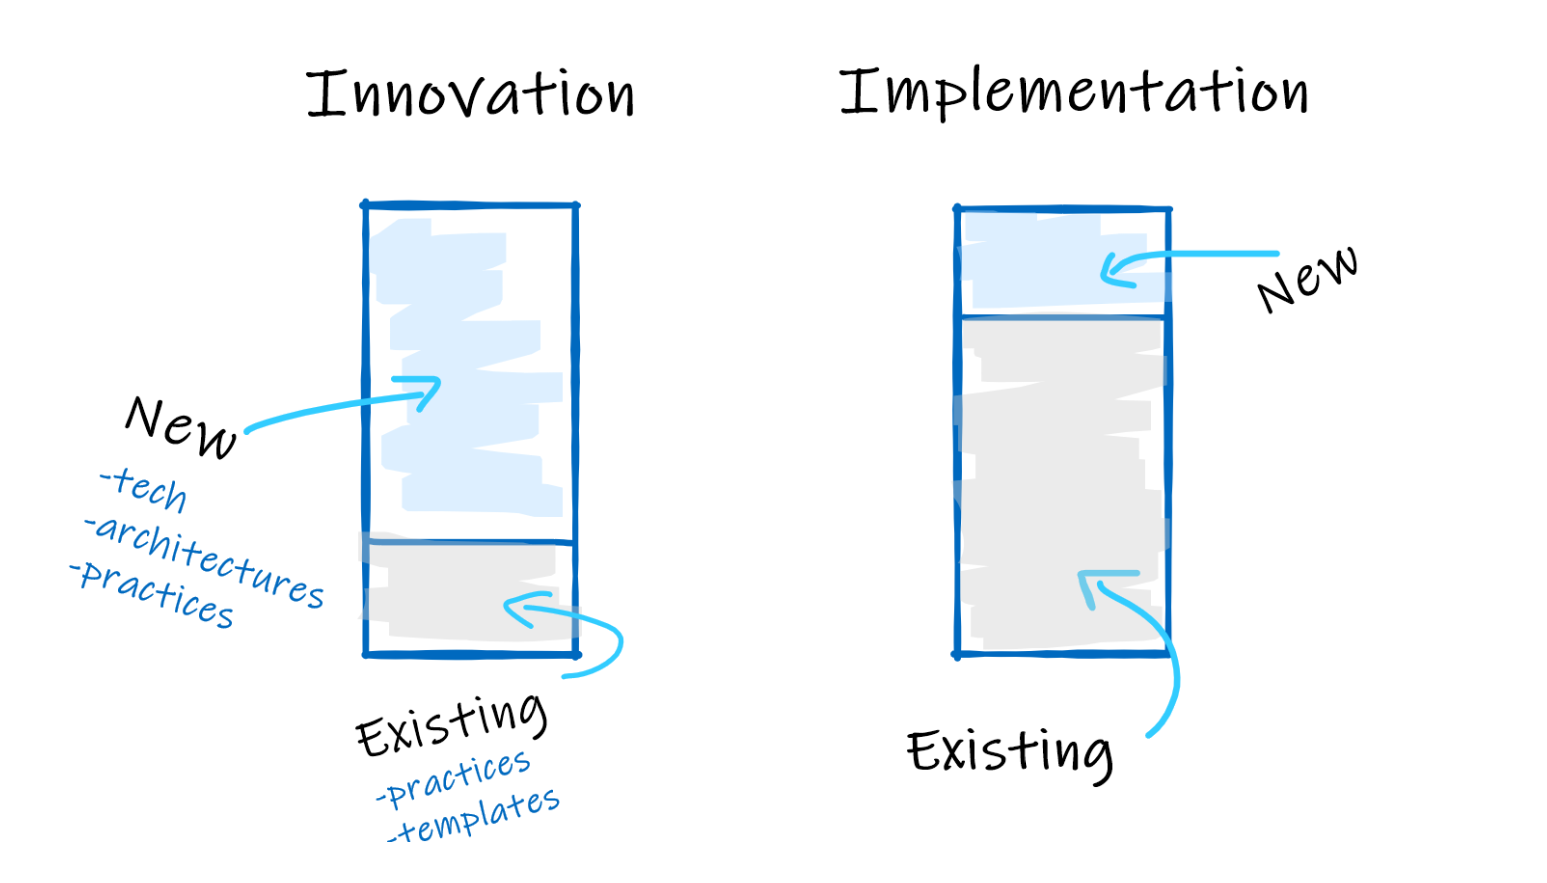 diagram: innovation and implementation ratio for new and existing tech